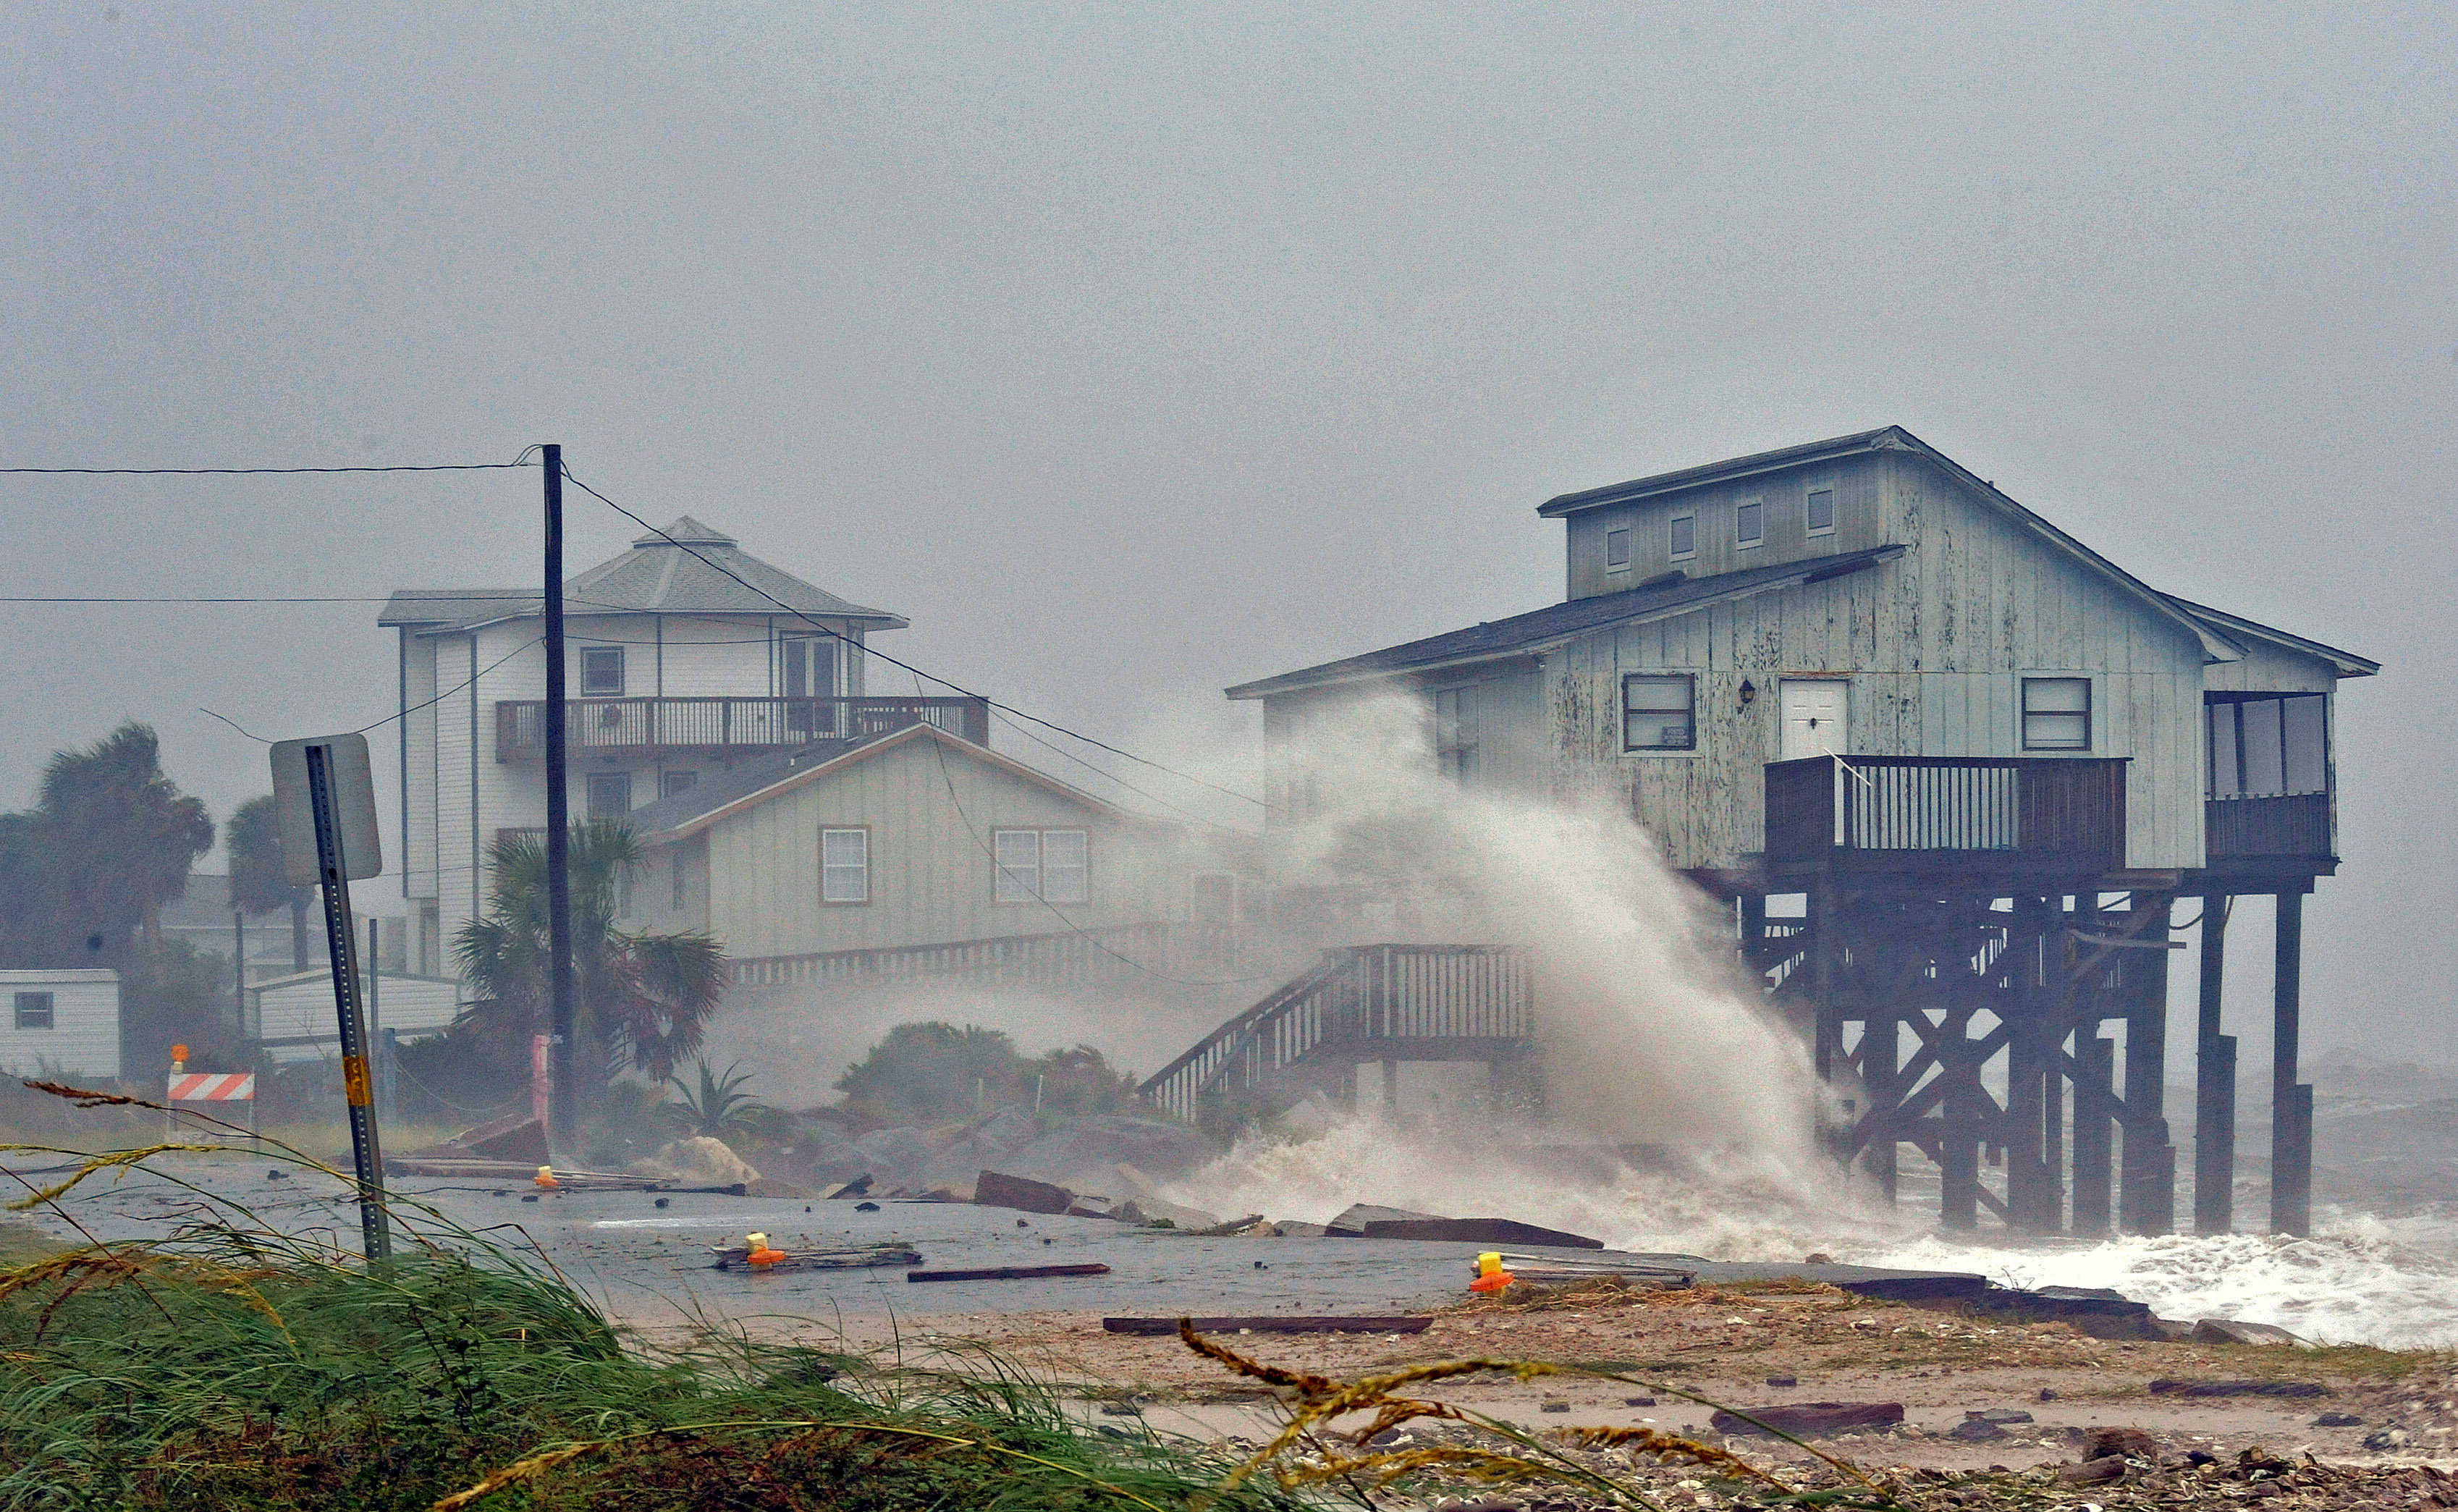 Waves crash on stilt houses along the shore due to Hurricane Michael at Alligator Point in Franklin County, Florida, U.S., October 10, 2018. REUTERS/Steve Nesius